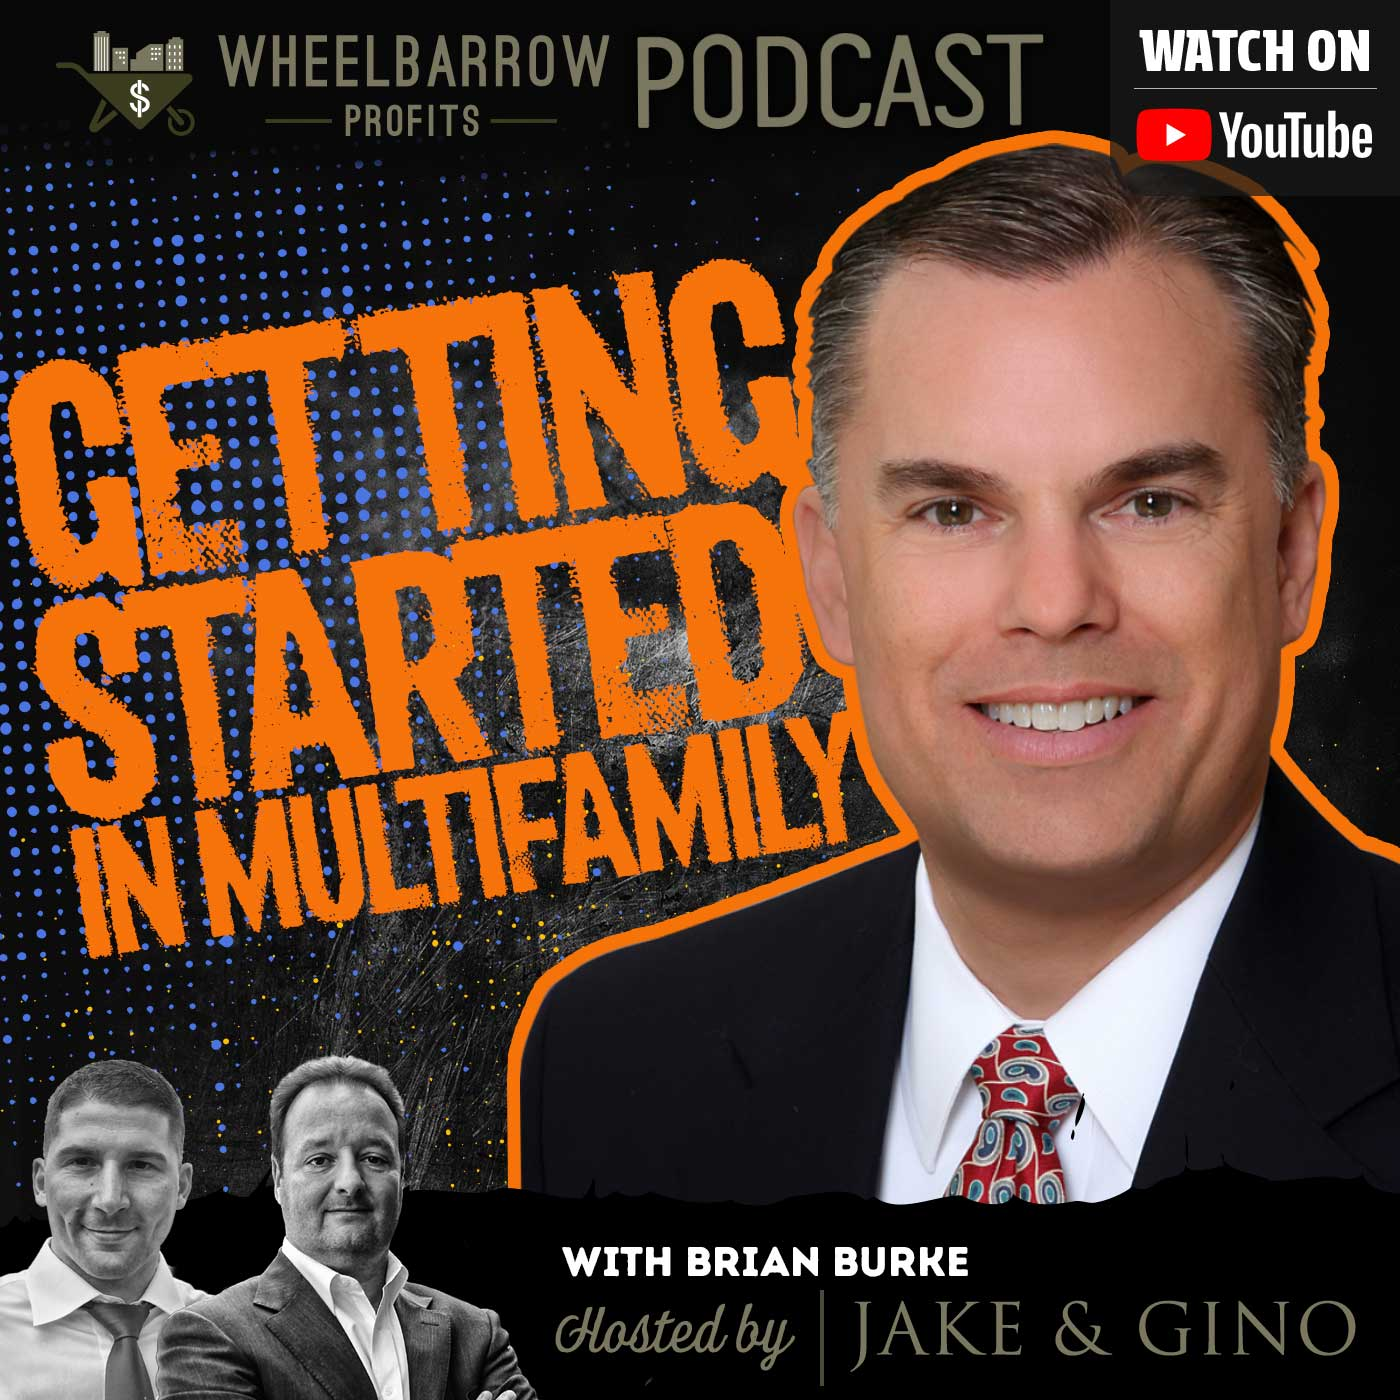 How To Get Started with Multifamily Investing W/ Brian Burke